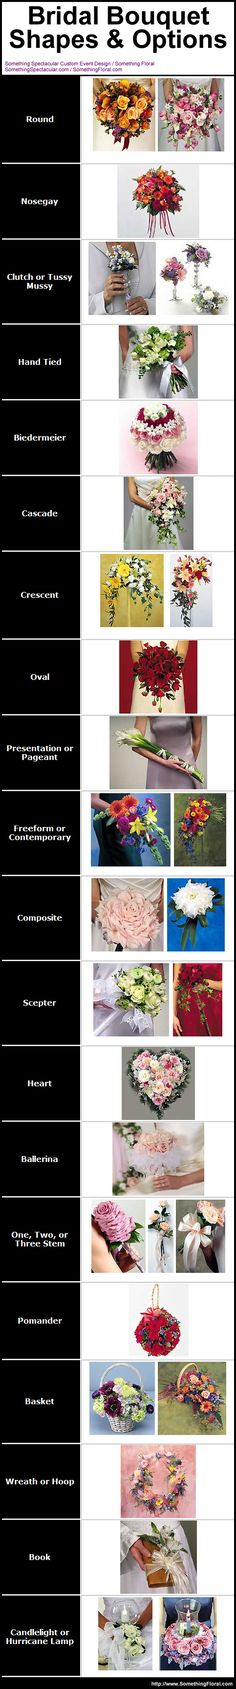 A helpful reference for brides. A pictorial list of bridal bouquet and bridesmaid bouquet shapes and options. #wedding #flowers #bouquets #shapes #types